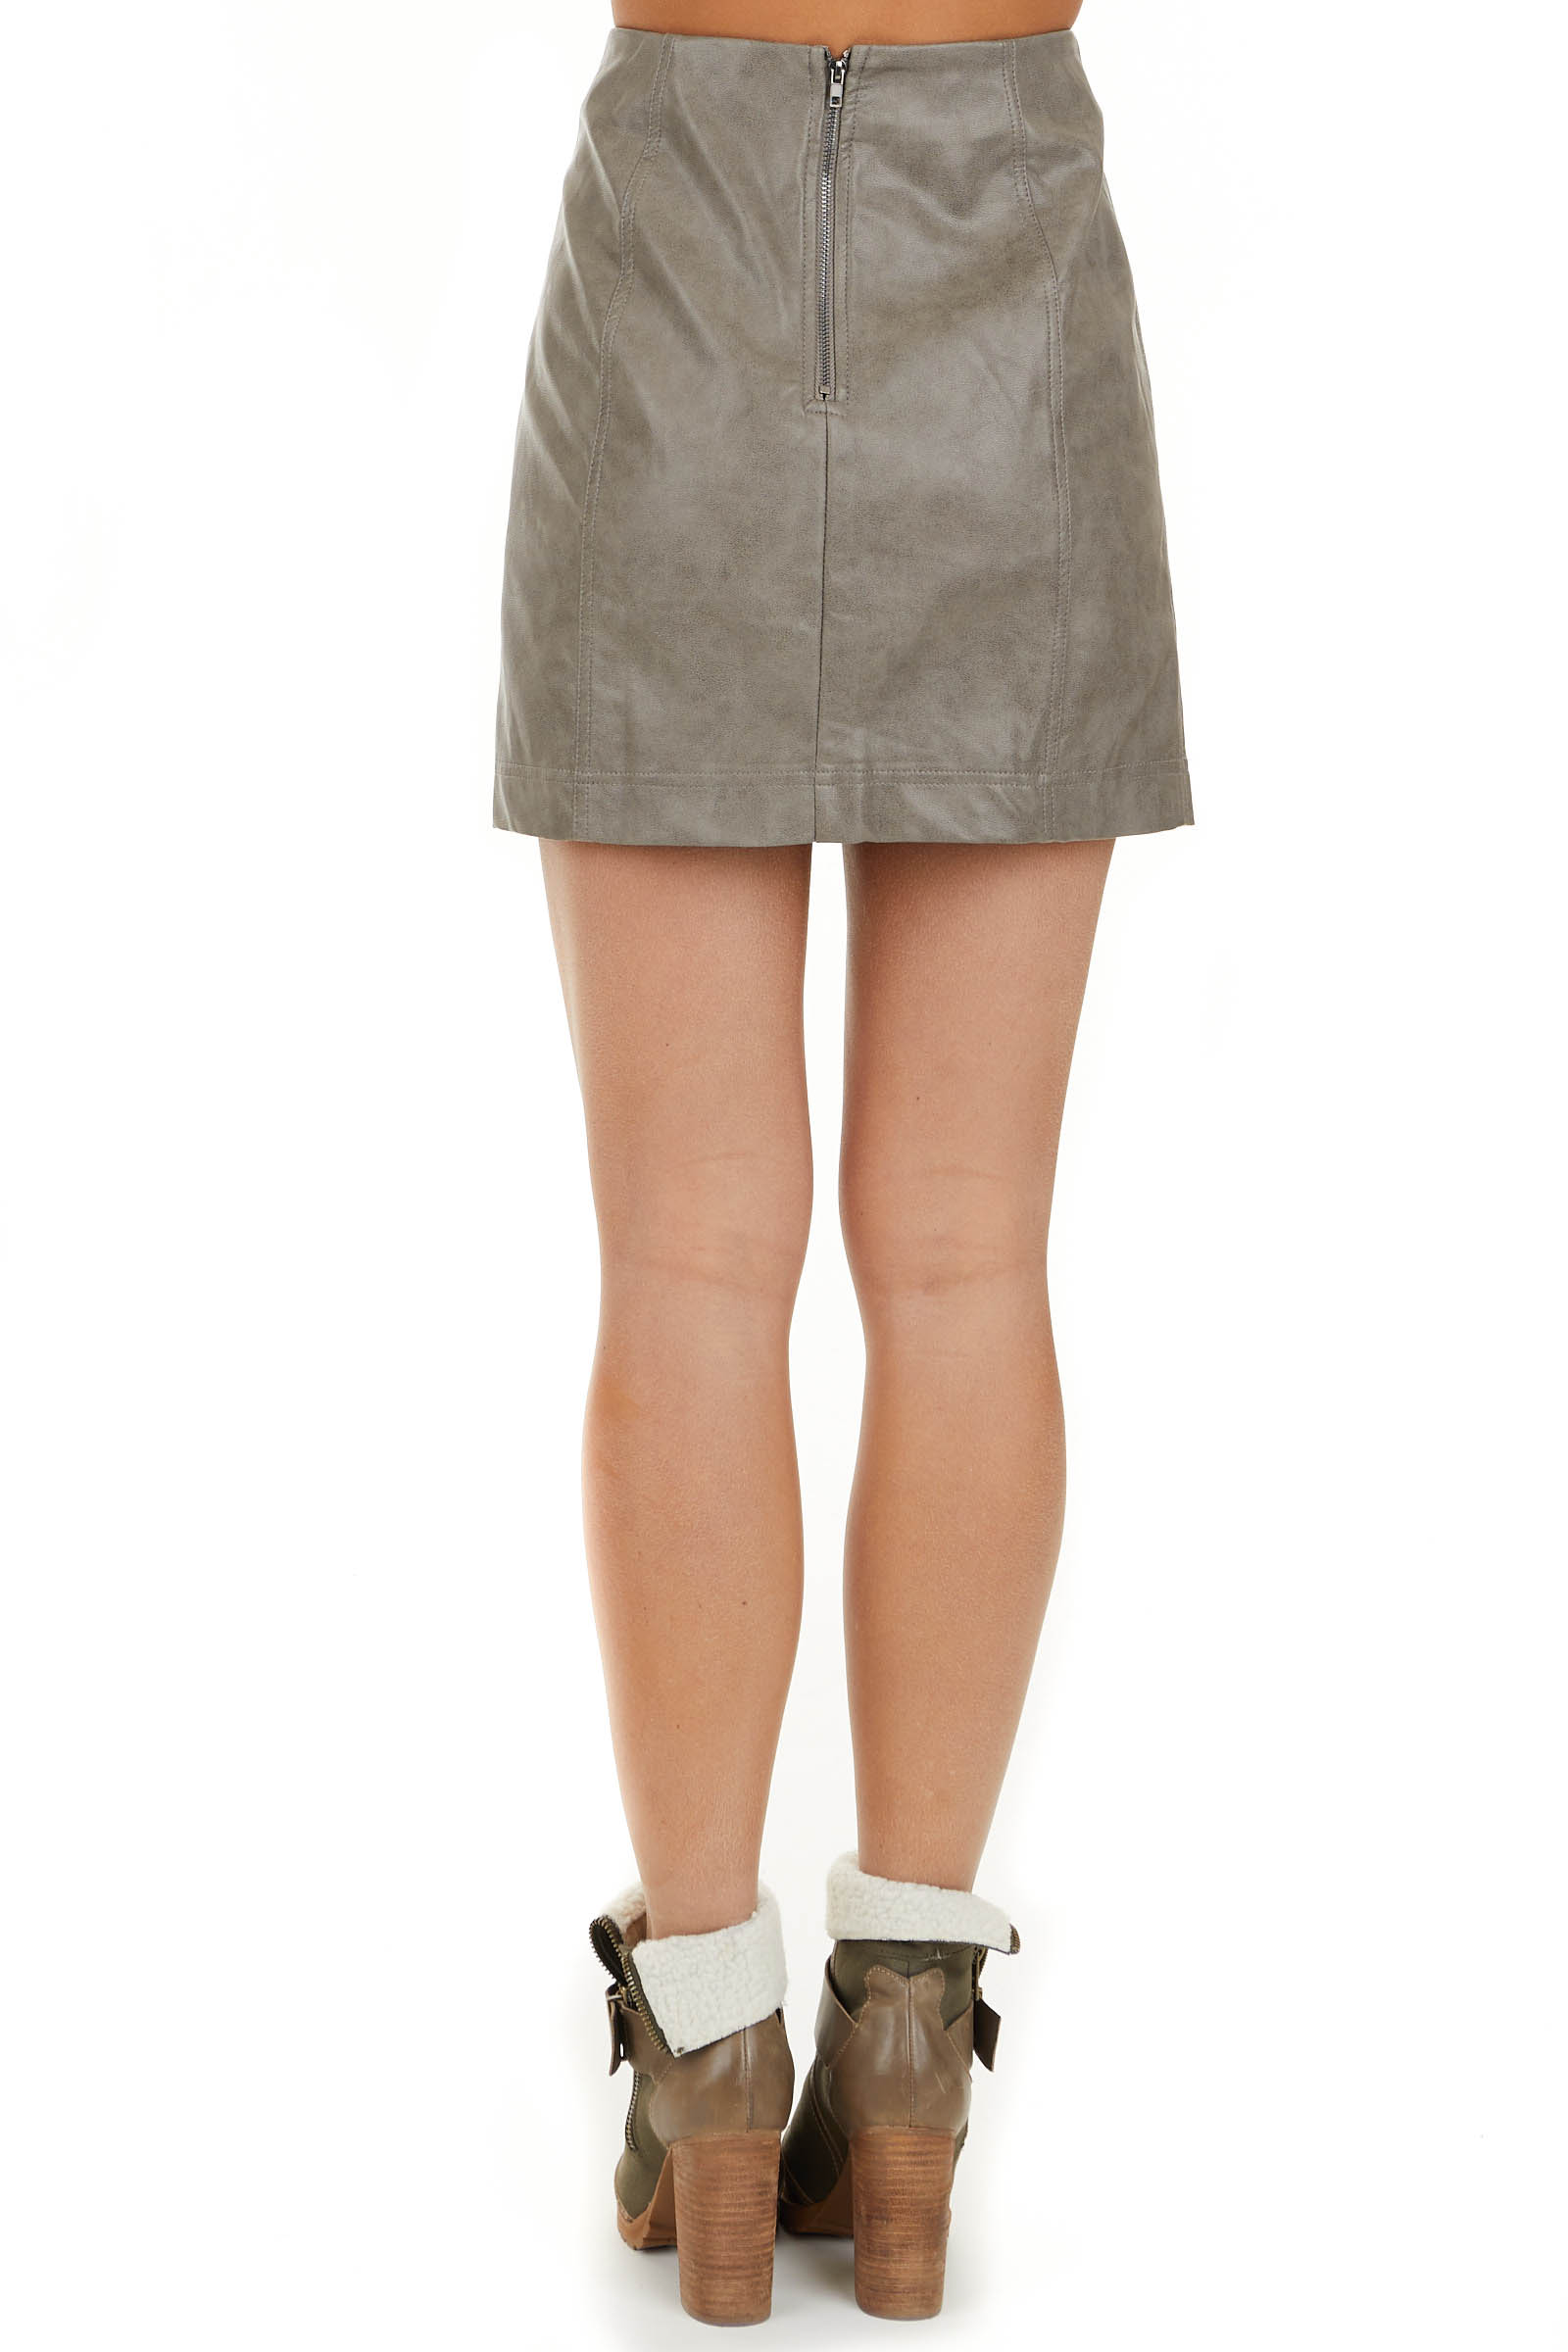 Taupe Faux Leather Fitted Mini Skirt with Zip Up Closure back view